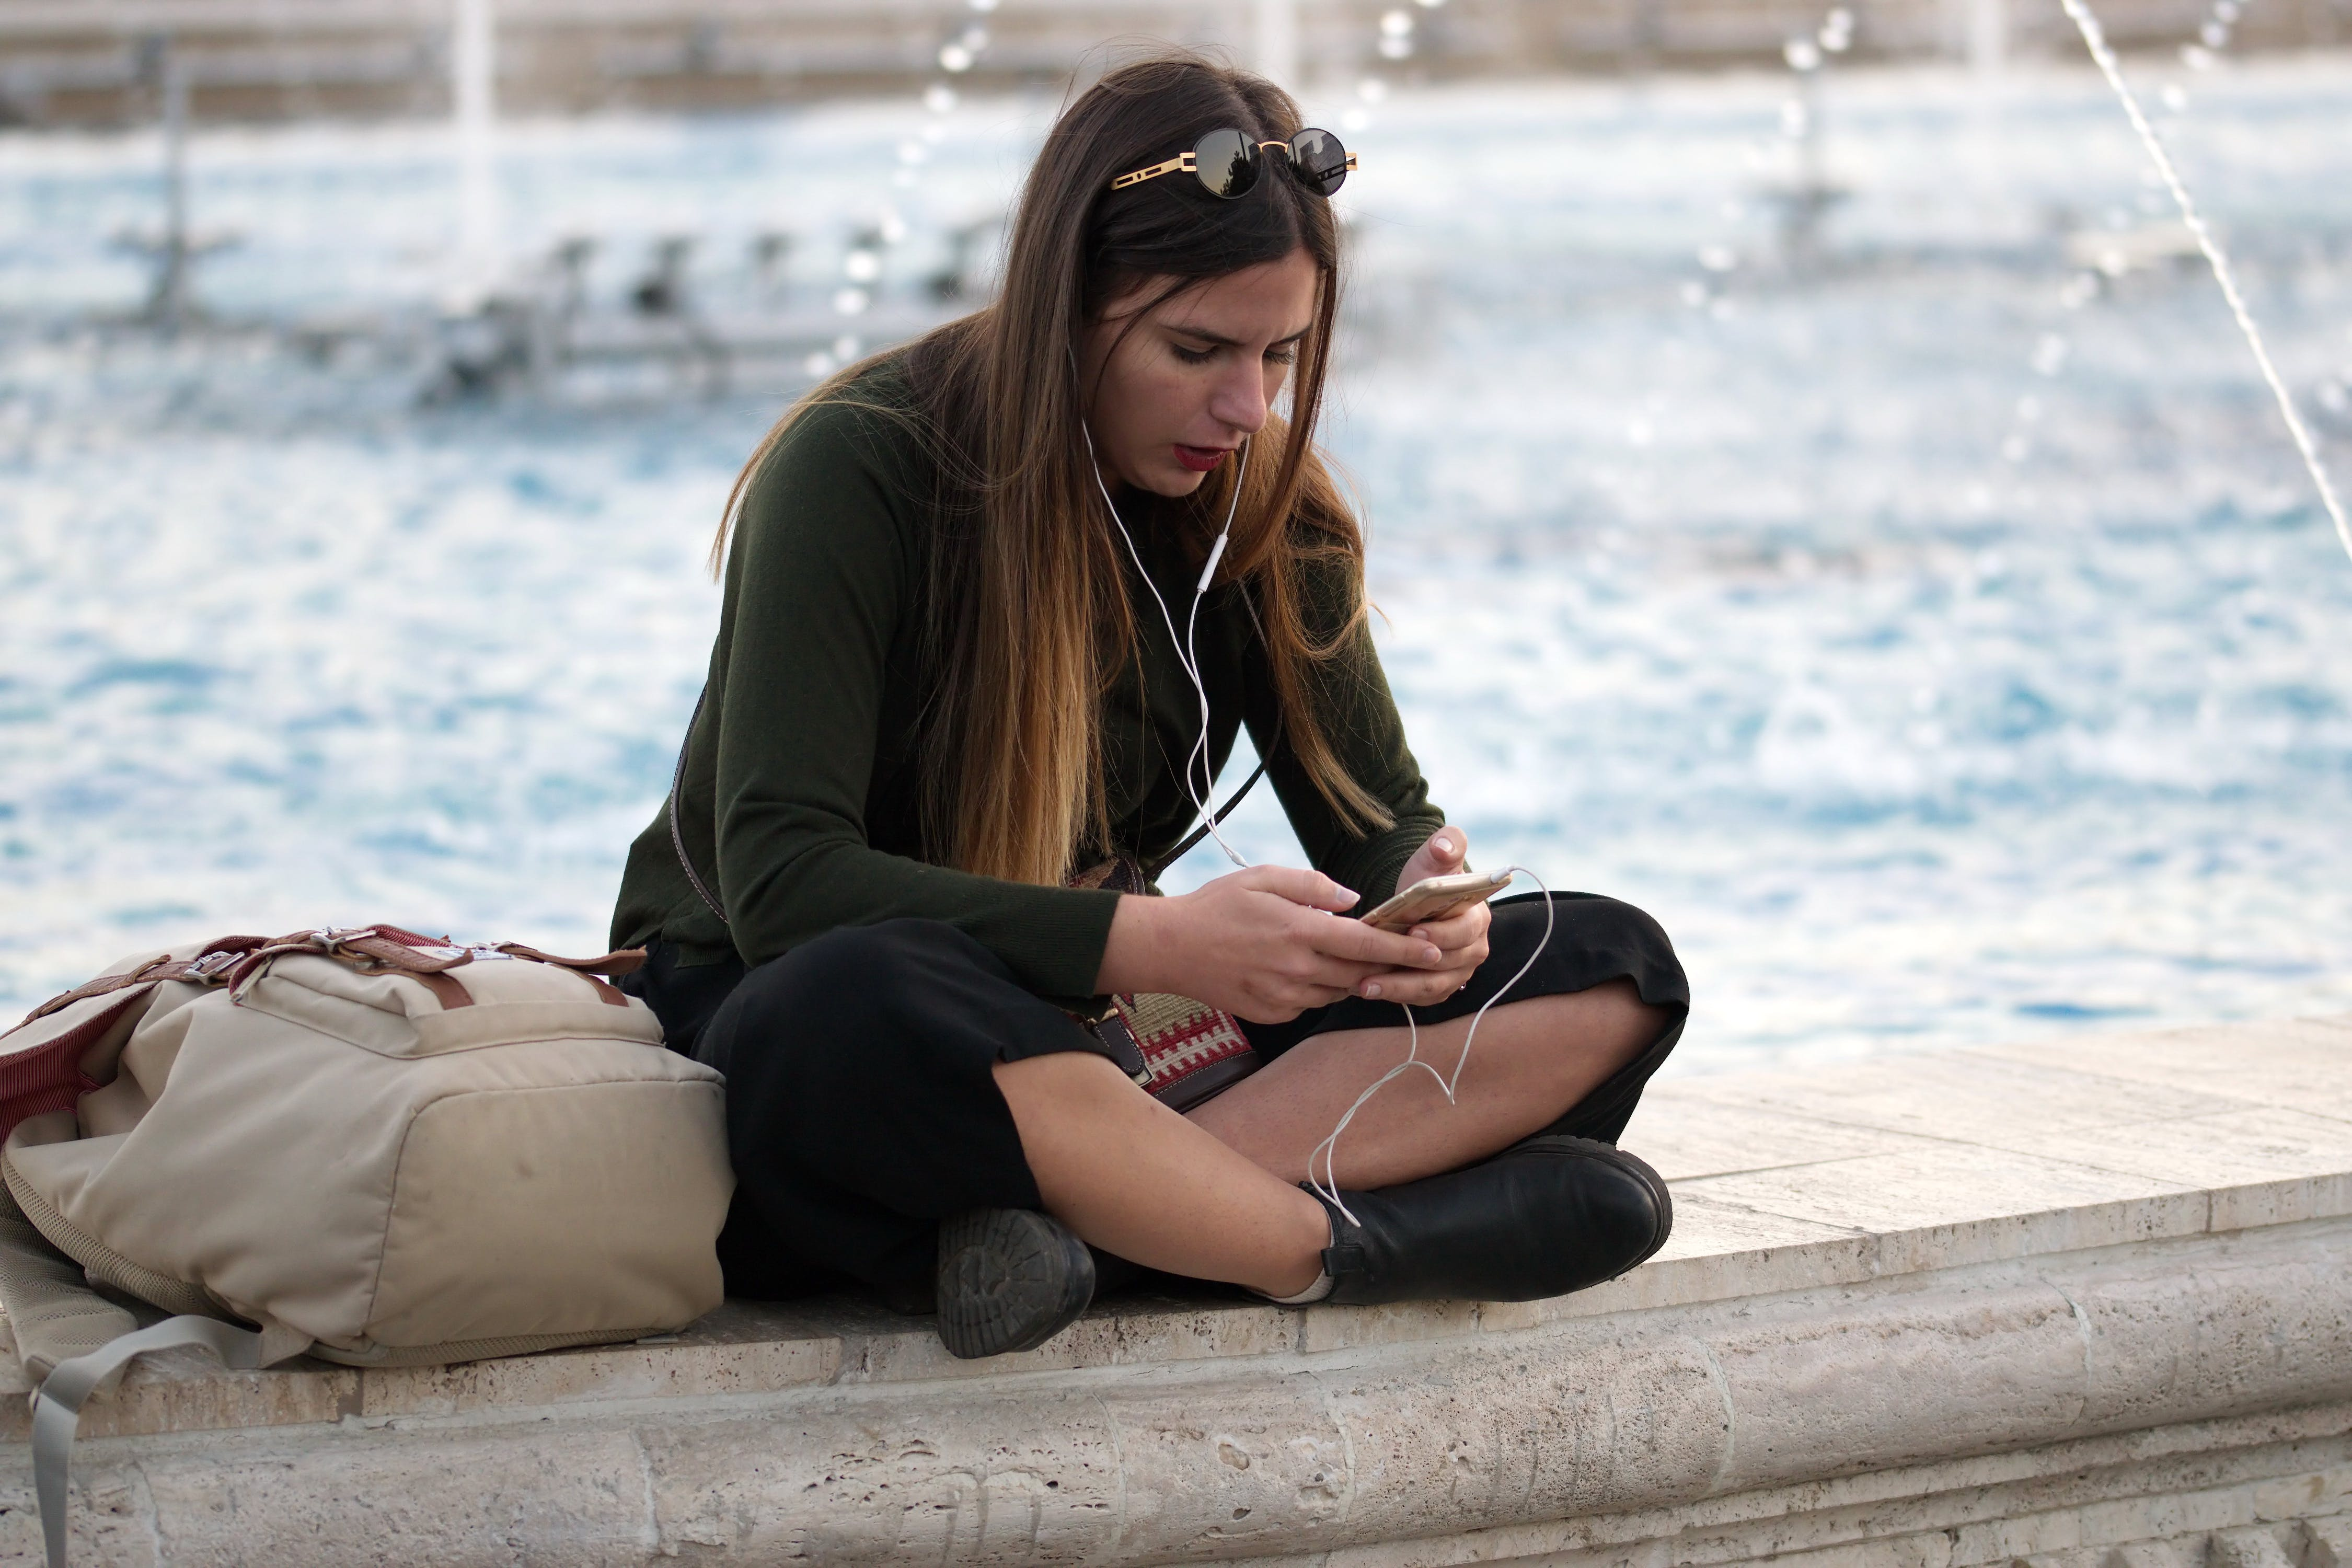 Woman Holding Smartphone While Sitting on Bench